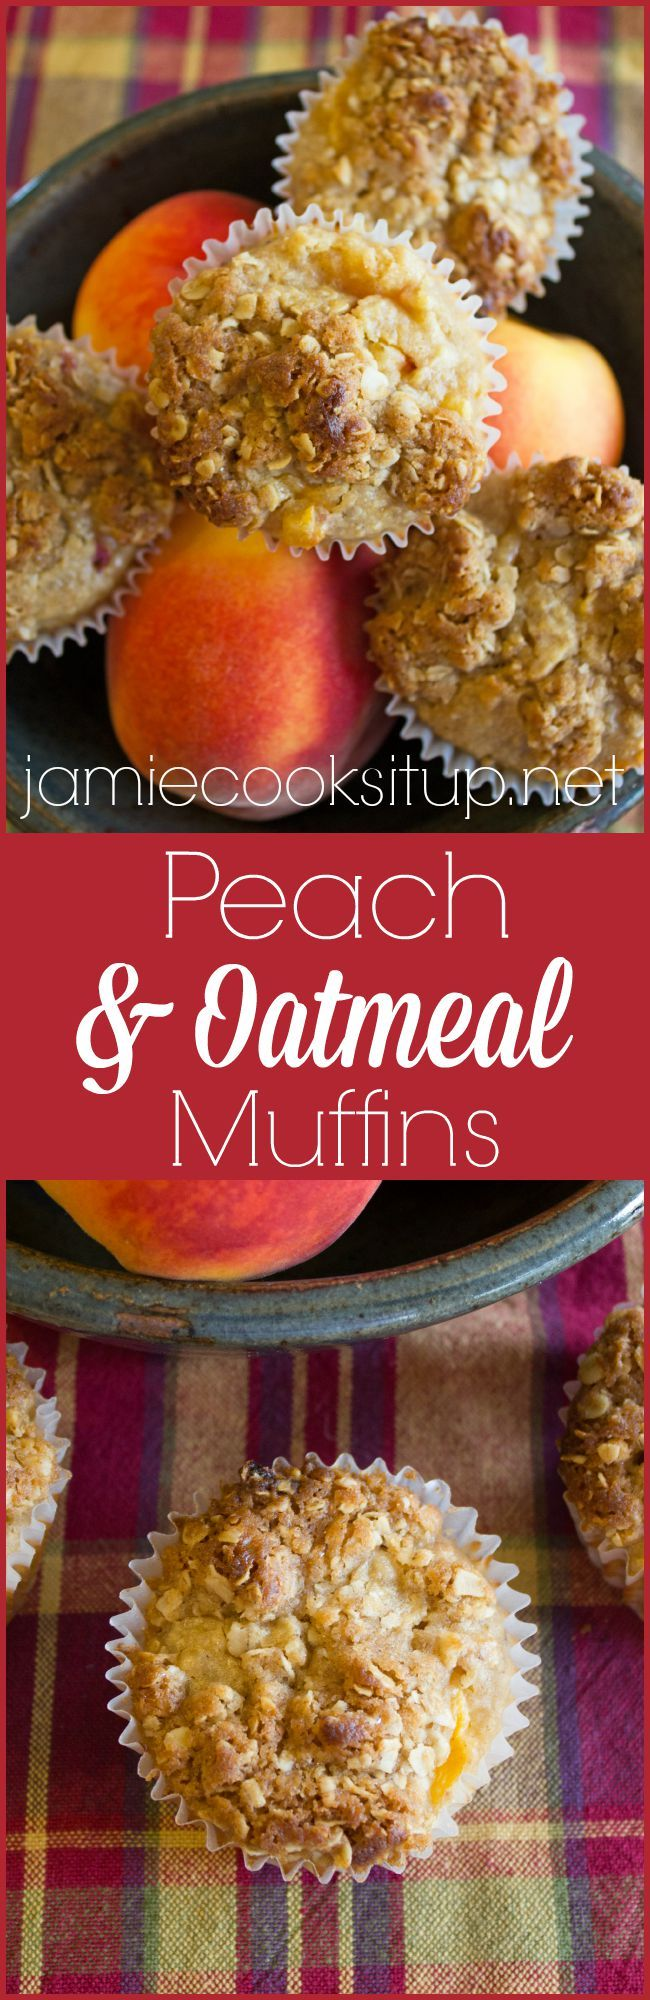 Peach and Oatmeal Muffins Jamie Cooks It Up! For those of you with a lot of peaches handy.